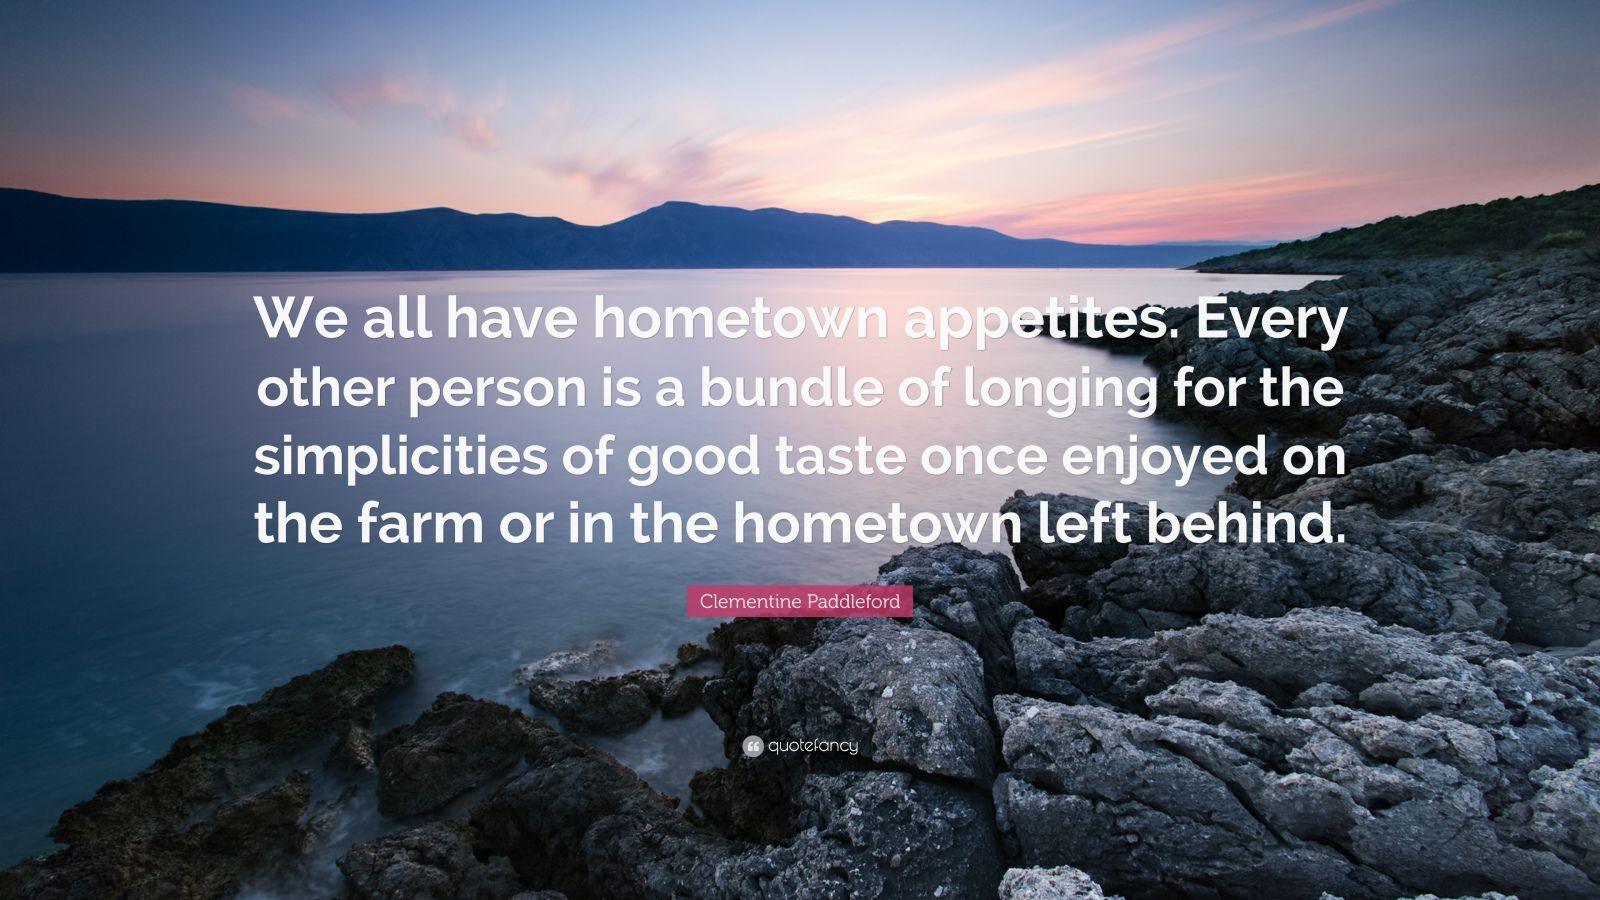 """Clementine Paddleford Quote: """"We all have hometown appetites. Every other person is a bundle of longing for the simplicities of good taste once enjoyed on the farm or in the hometown left behind."""""""